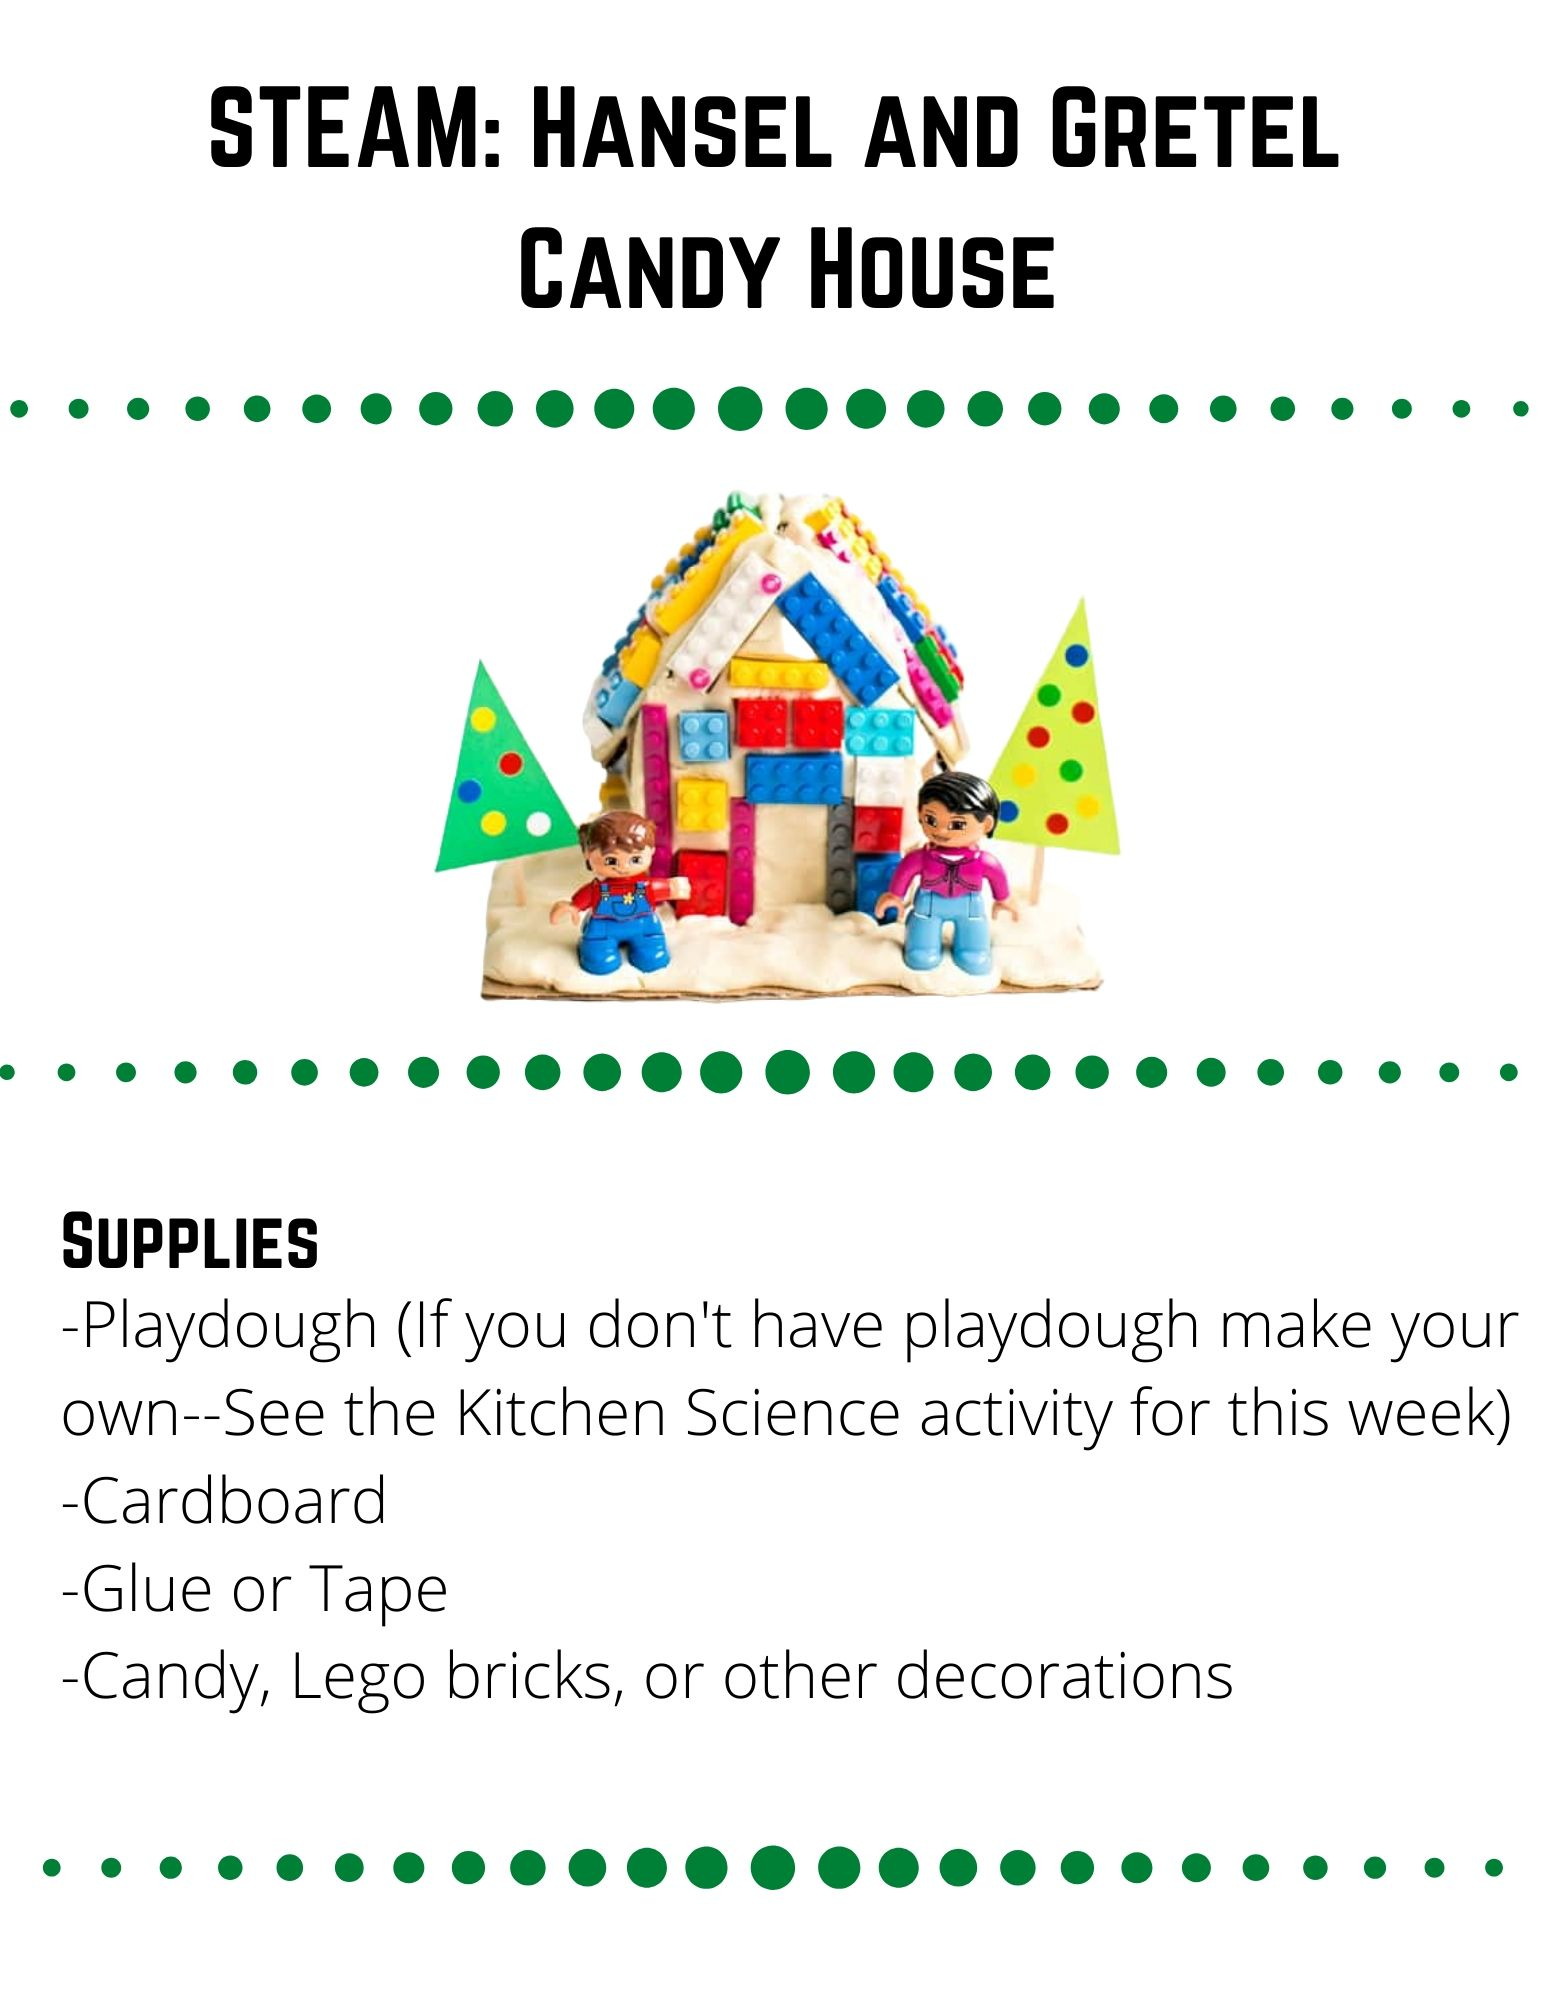 STEAM: Hansel and Gretel Candy House: Supplies: -Playdough (If you don't have playdough make your own--See the Kitchen Science activity for this week) -Cardboard  -Glue or Tape -Candy, Lego bricks, or other decorations. Construct a house out of cardboard, cover it in playdough and decorate it with candy or items that look like candy (legos, pom poms, pipe cleaners, buttons).  How will you build your cardboard house?  Cut the pieces out and figure out how to connect them together.  Do you need a base to keep the house standing up?  Are there other materials that would help your house be more sturdy?  When you are ready, build your cardboard house. Once your house is sturdy, cover it in playdough. Then you can decorate your house with candy! Was it difficult to build a house that was sturdy enough to stand up on its own?  Did you need to use materials other than cardboard.  Did covering your house with playdough  and candy make your house fall over?  How did you fix it?  What could you do differently next time? Could you build a house out of playdough without using the cardboard as a base?  Does the playdough stand up on its own?  Is there another material that might help the playdough stand up?  Before decorating with candy, roll a dice, use the number on the dice to tell you how much of each type of candy to put on.